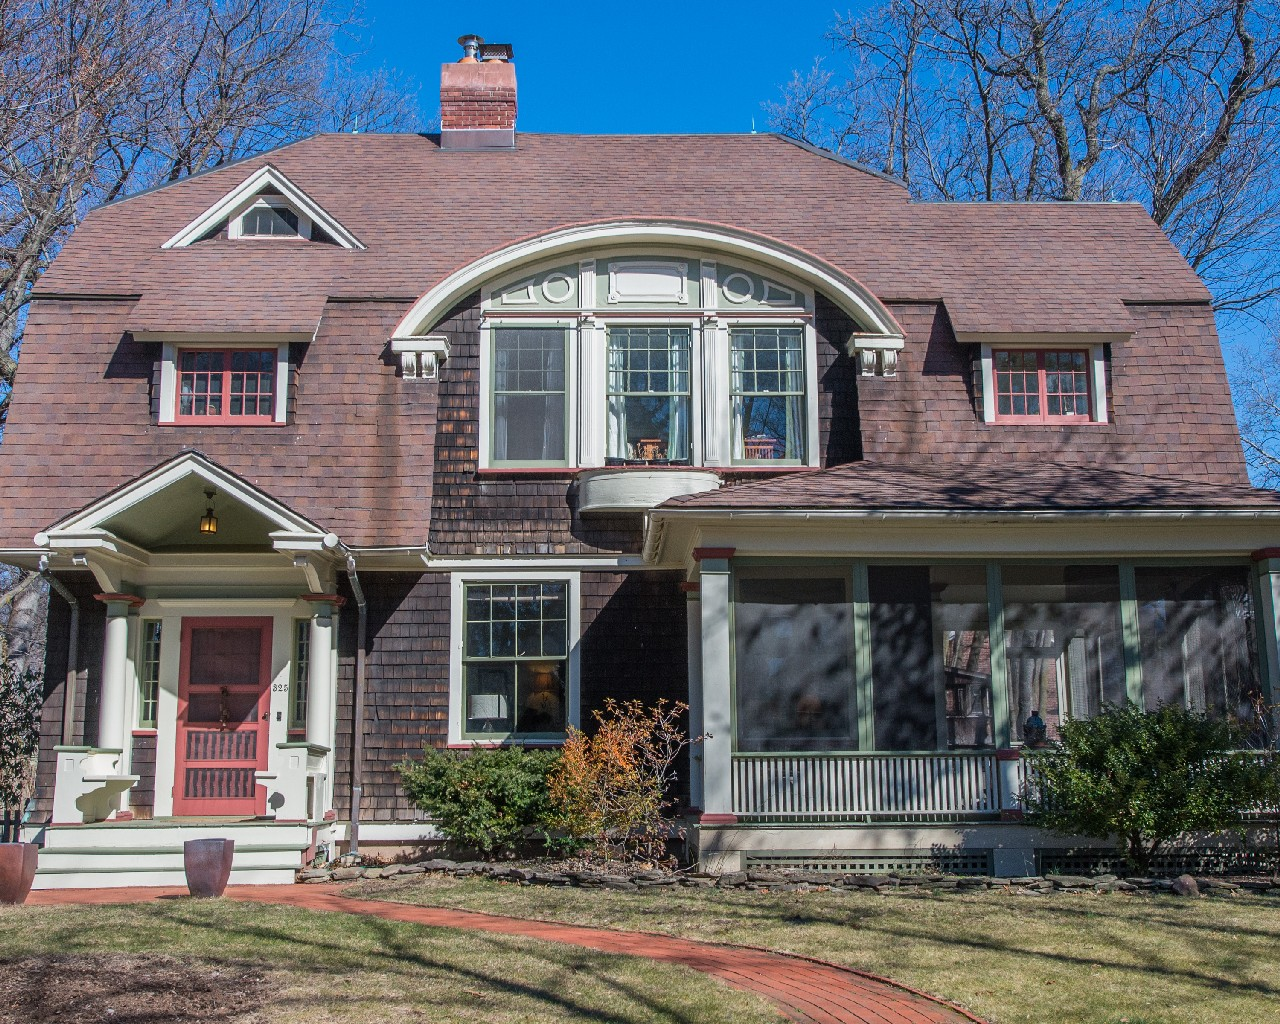 Single Family Home for Sale at Glen Ridge Colonial 325 Washington Street Glen Ridge, New Jersey 07028 United States